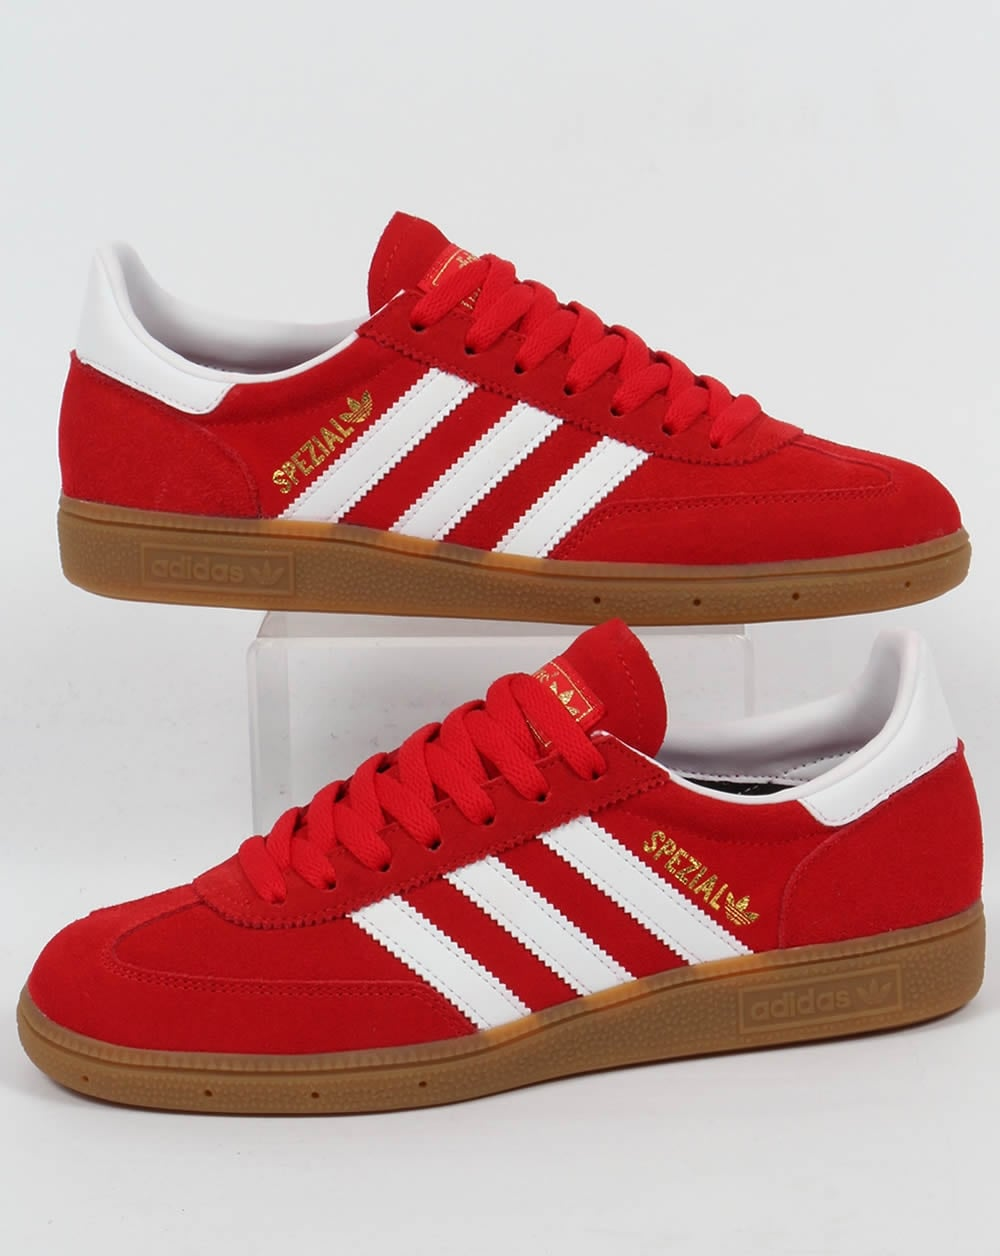 adidas Trainers Adidas Spezial Trainers Red White b95e88353